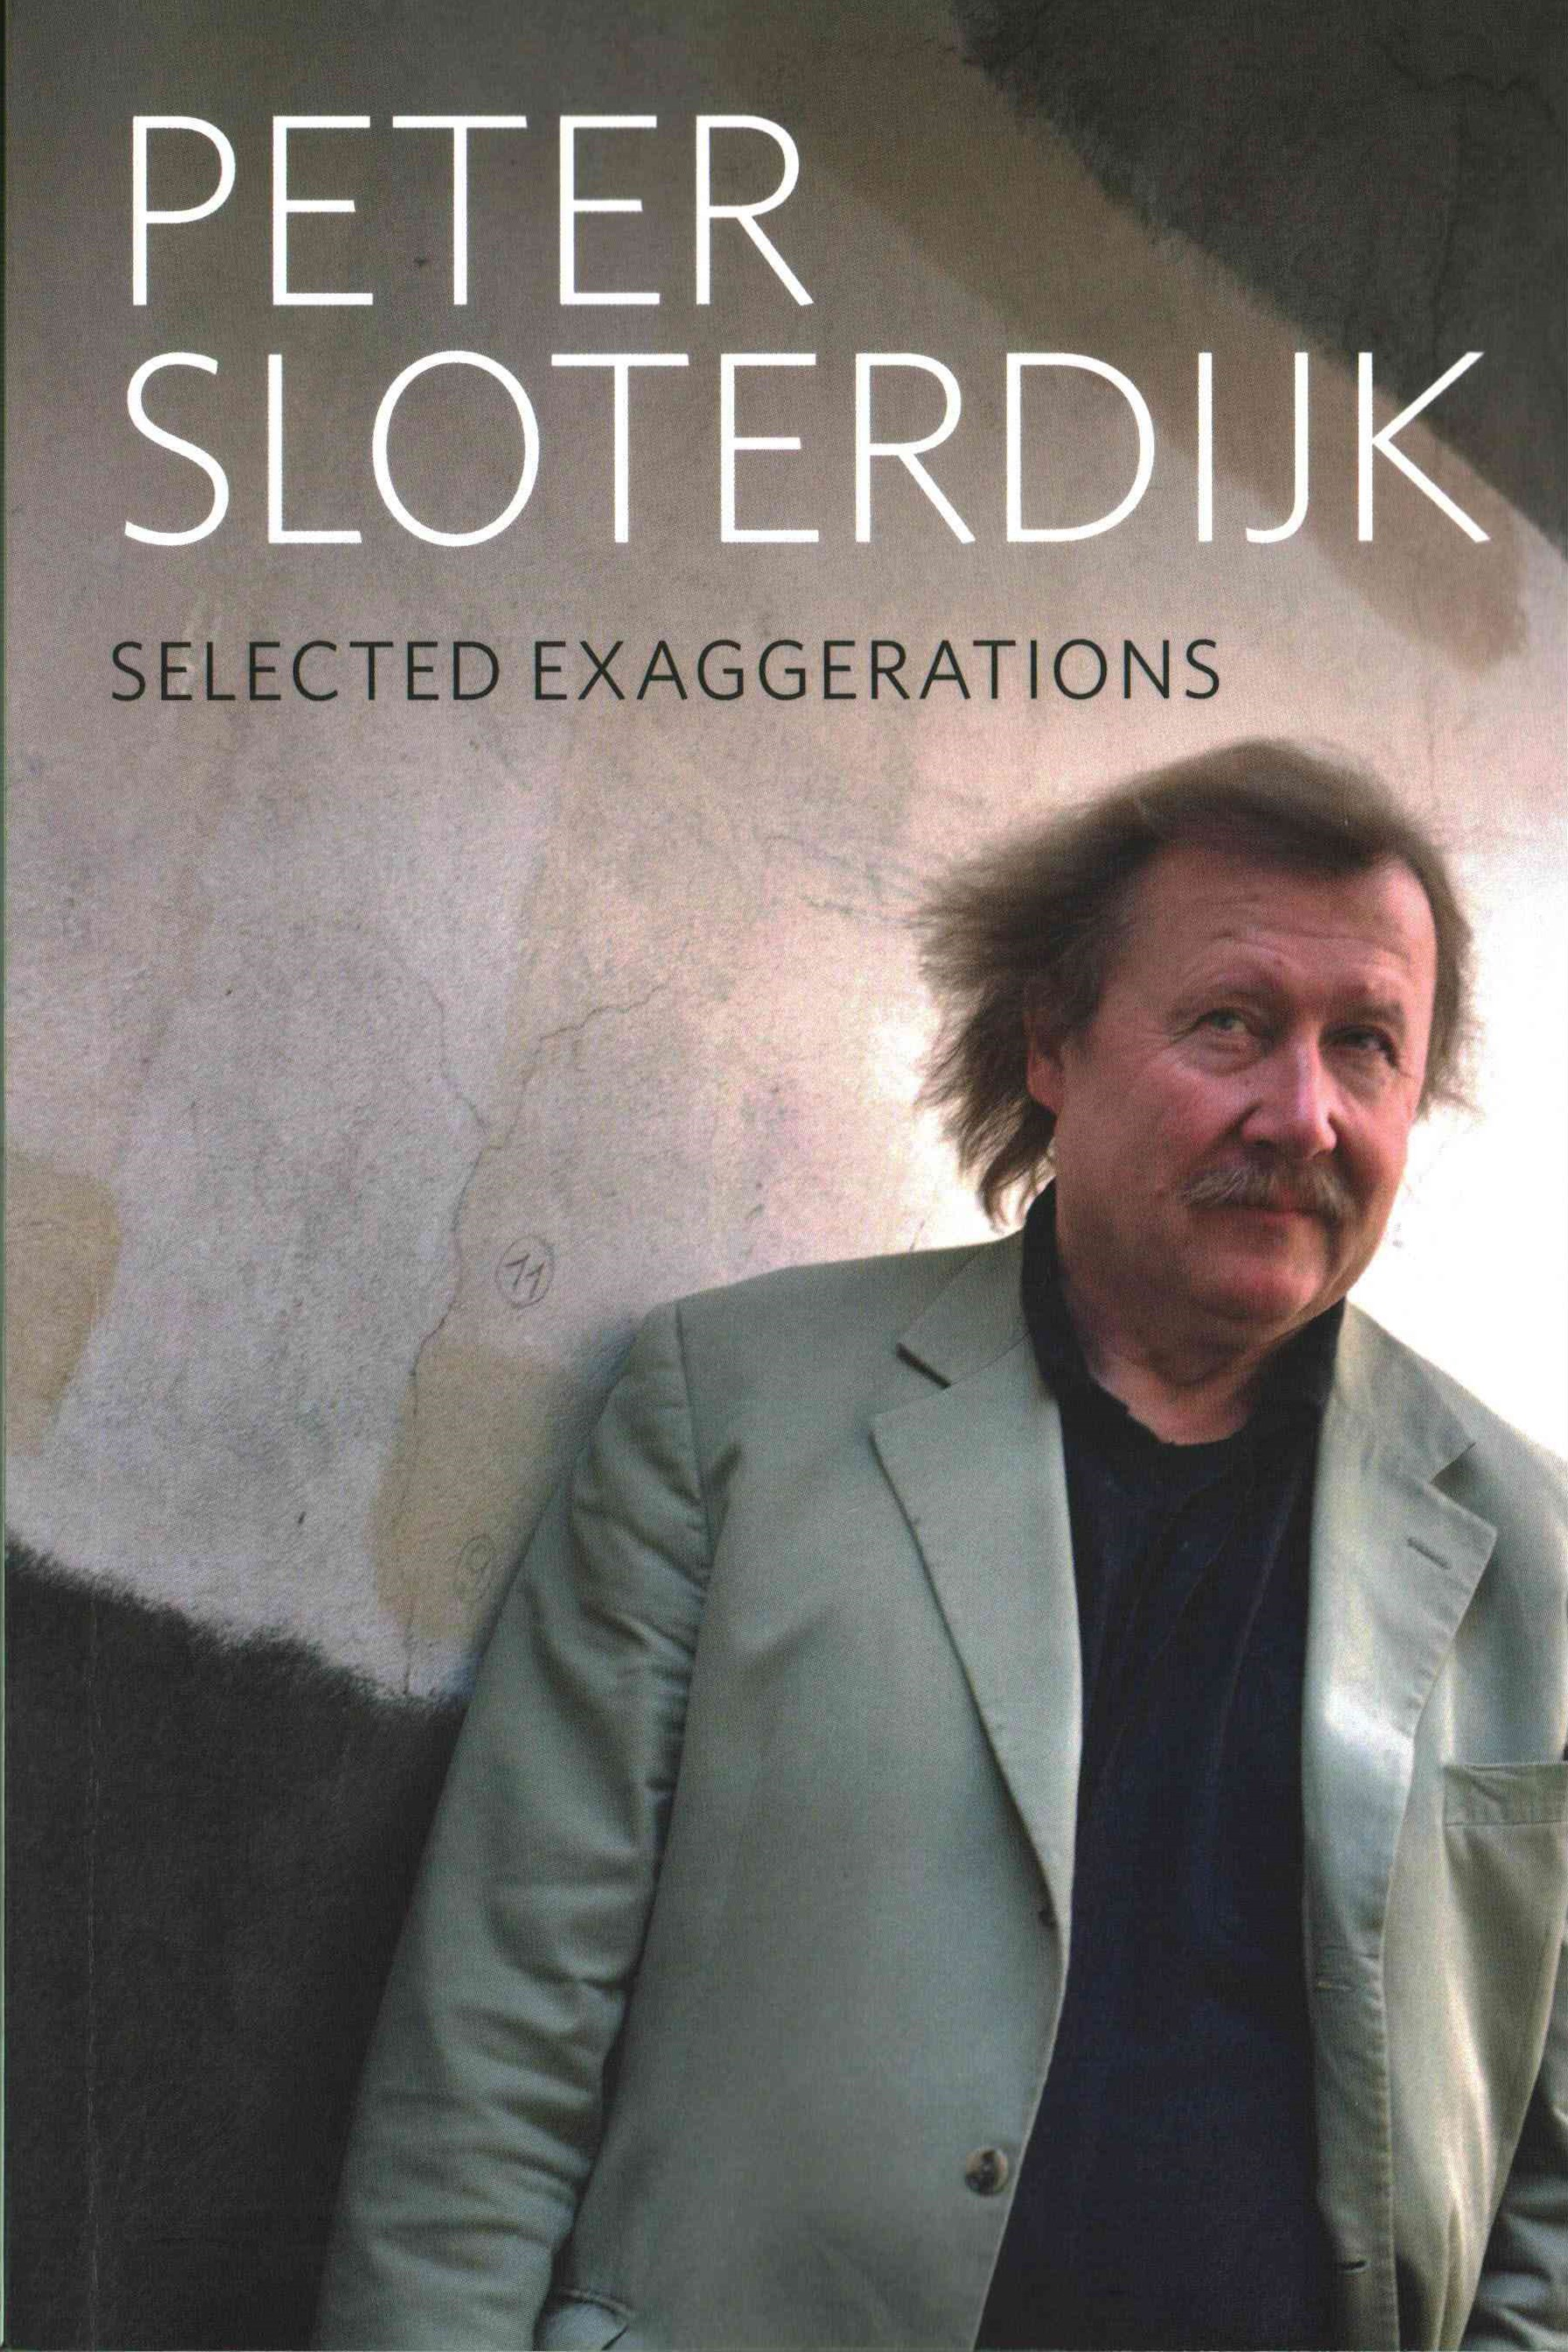 Selected Exaggerations - Conversations and        Interviews 1993-2012